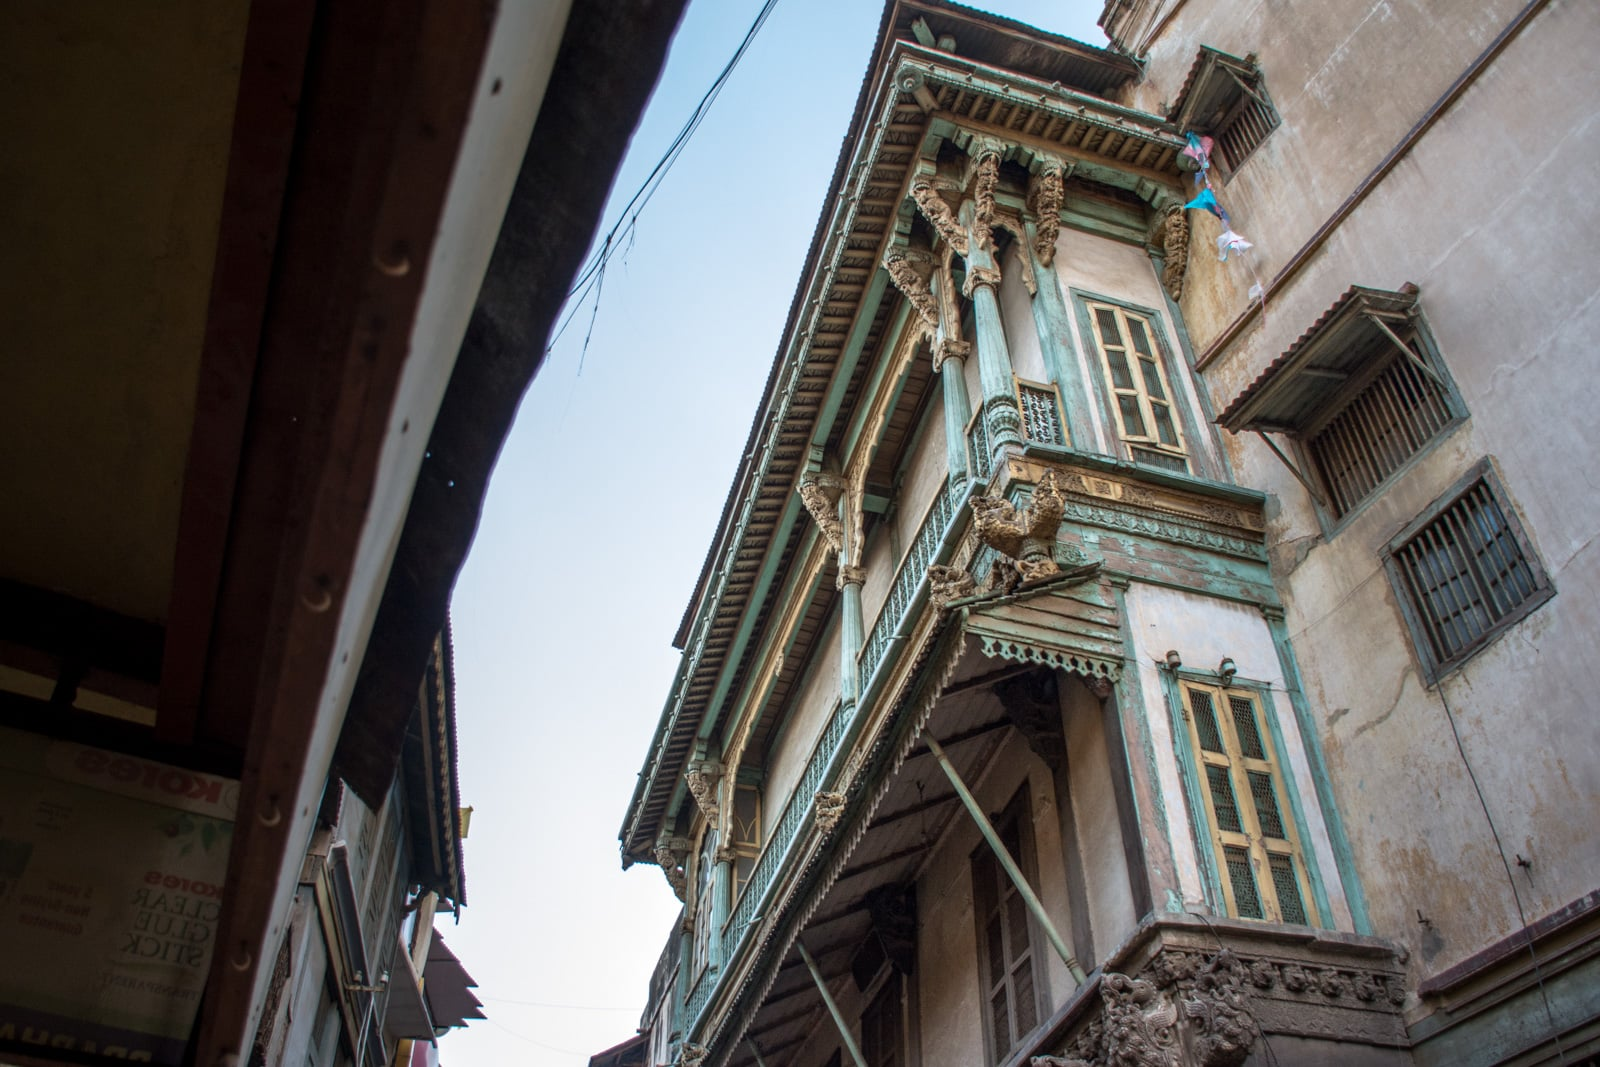 A traditional wooden house in the UNESCO old city